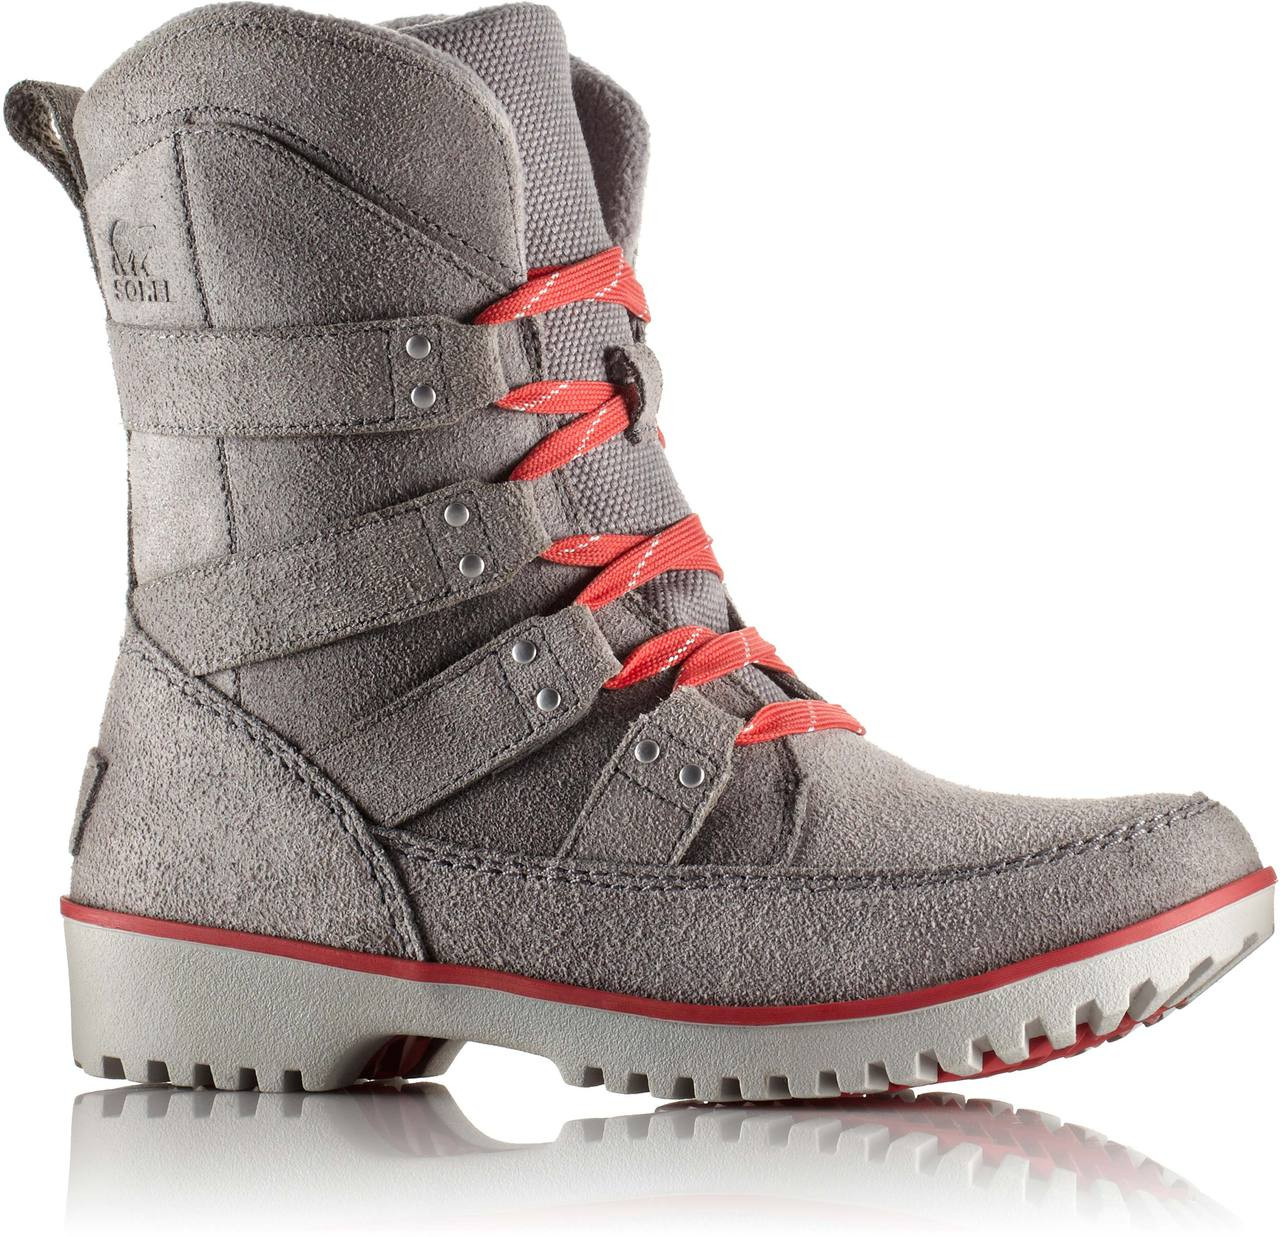 Home women s clearance shoes boots sorel women s meadow lace